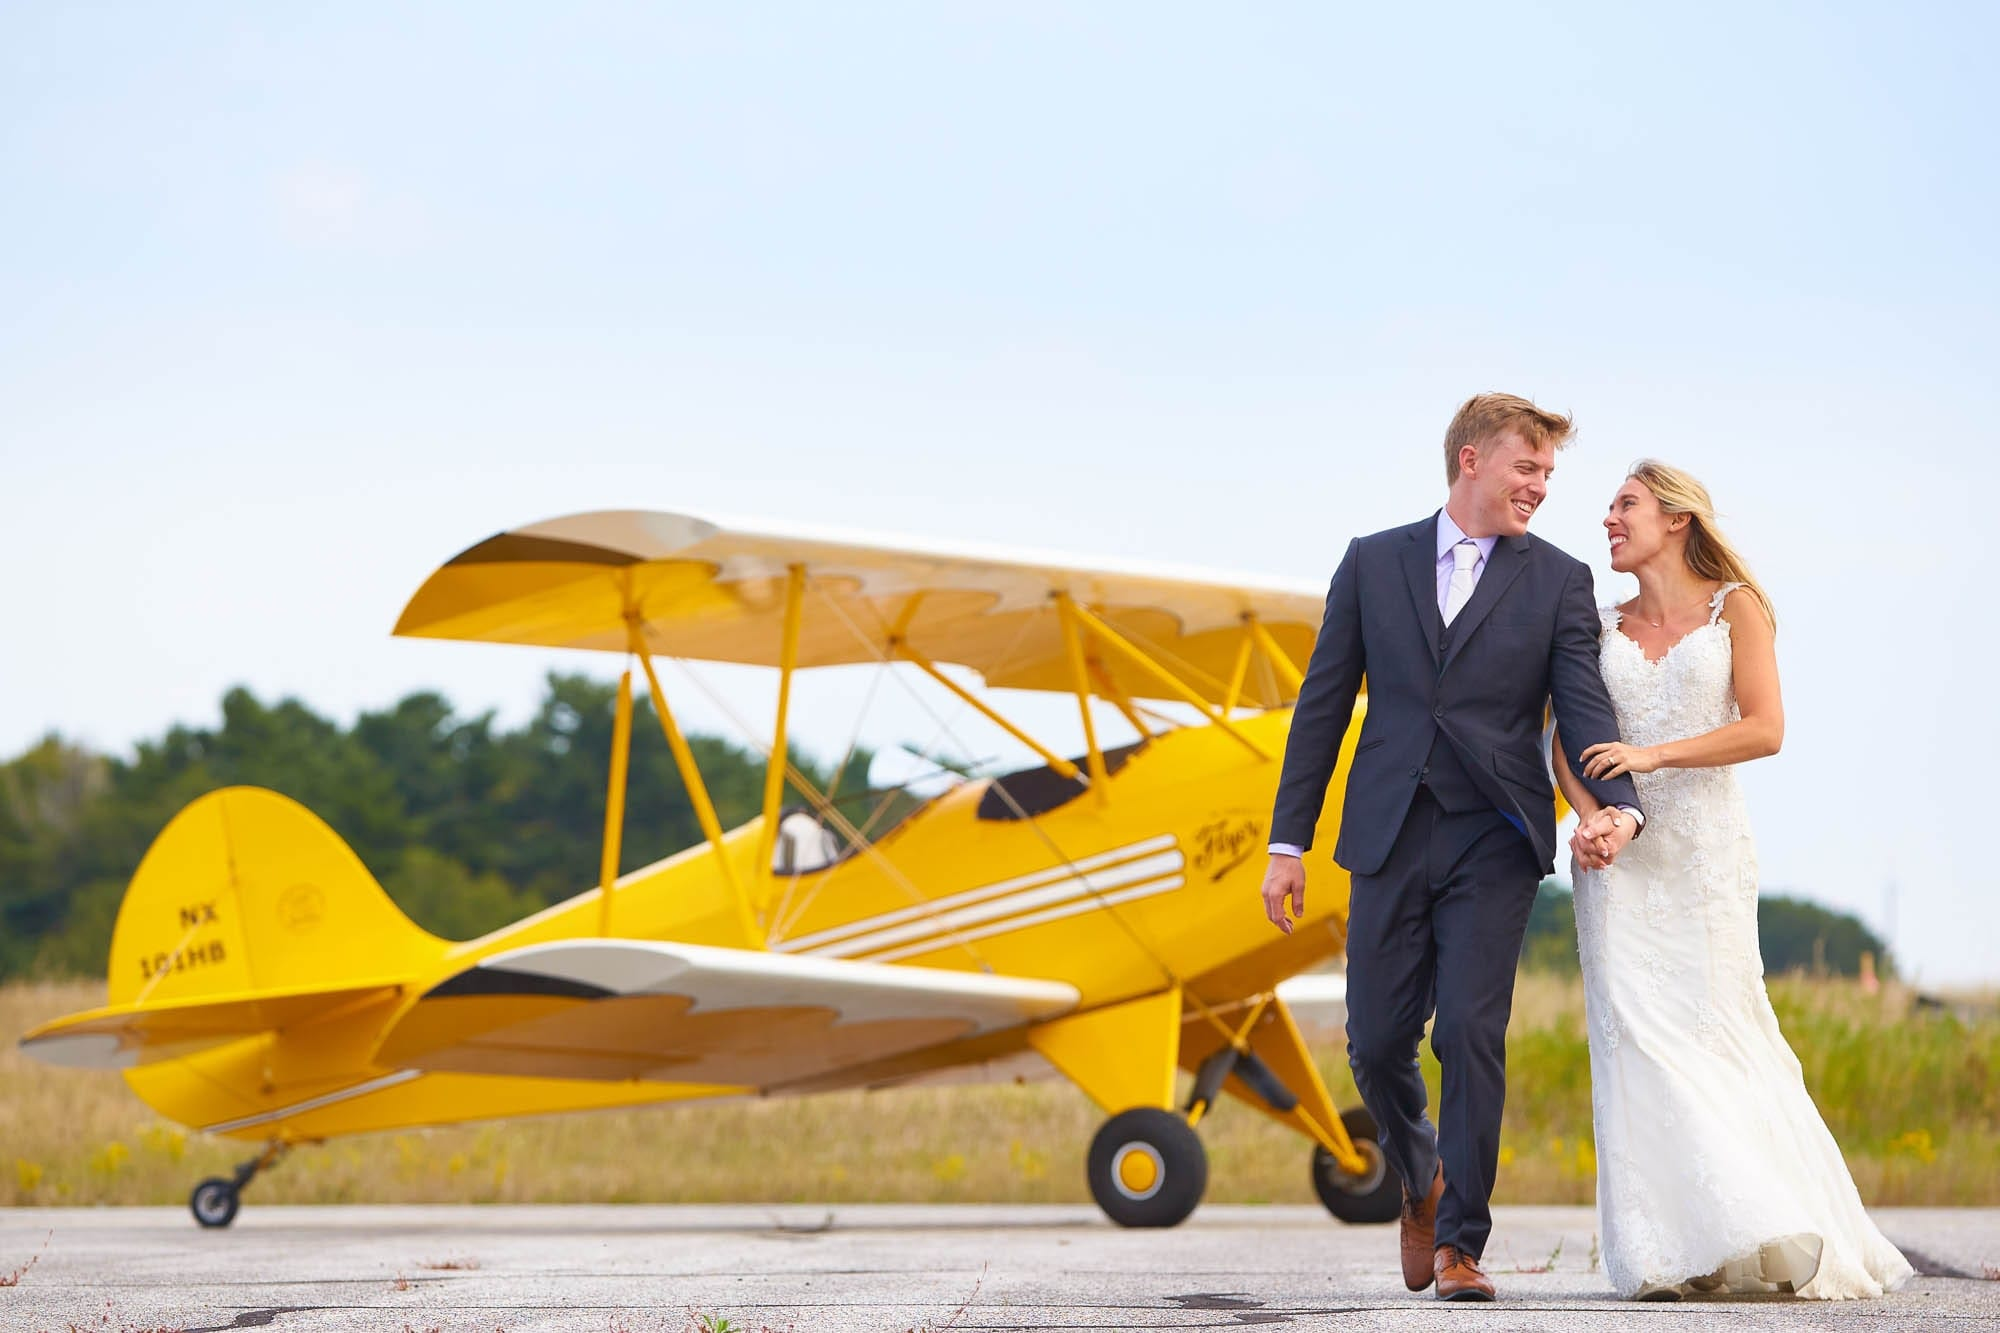 -photo-of-a-couple-on-a-airport-with-yellow-plane